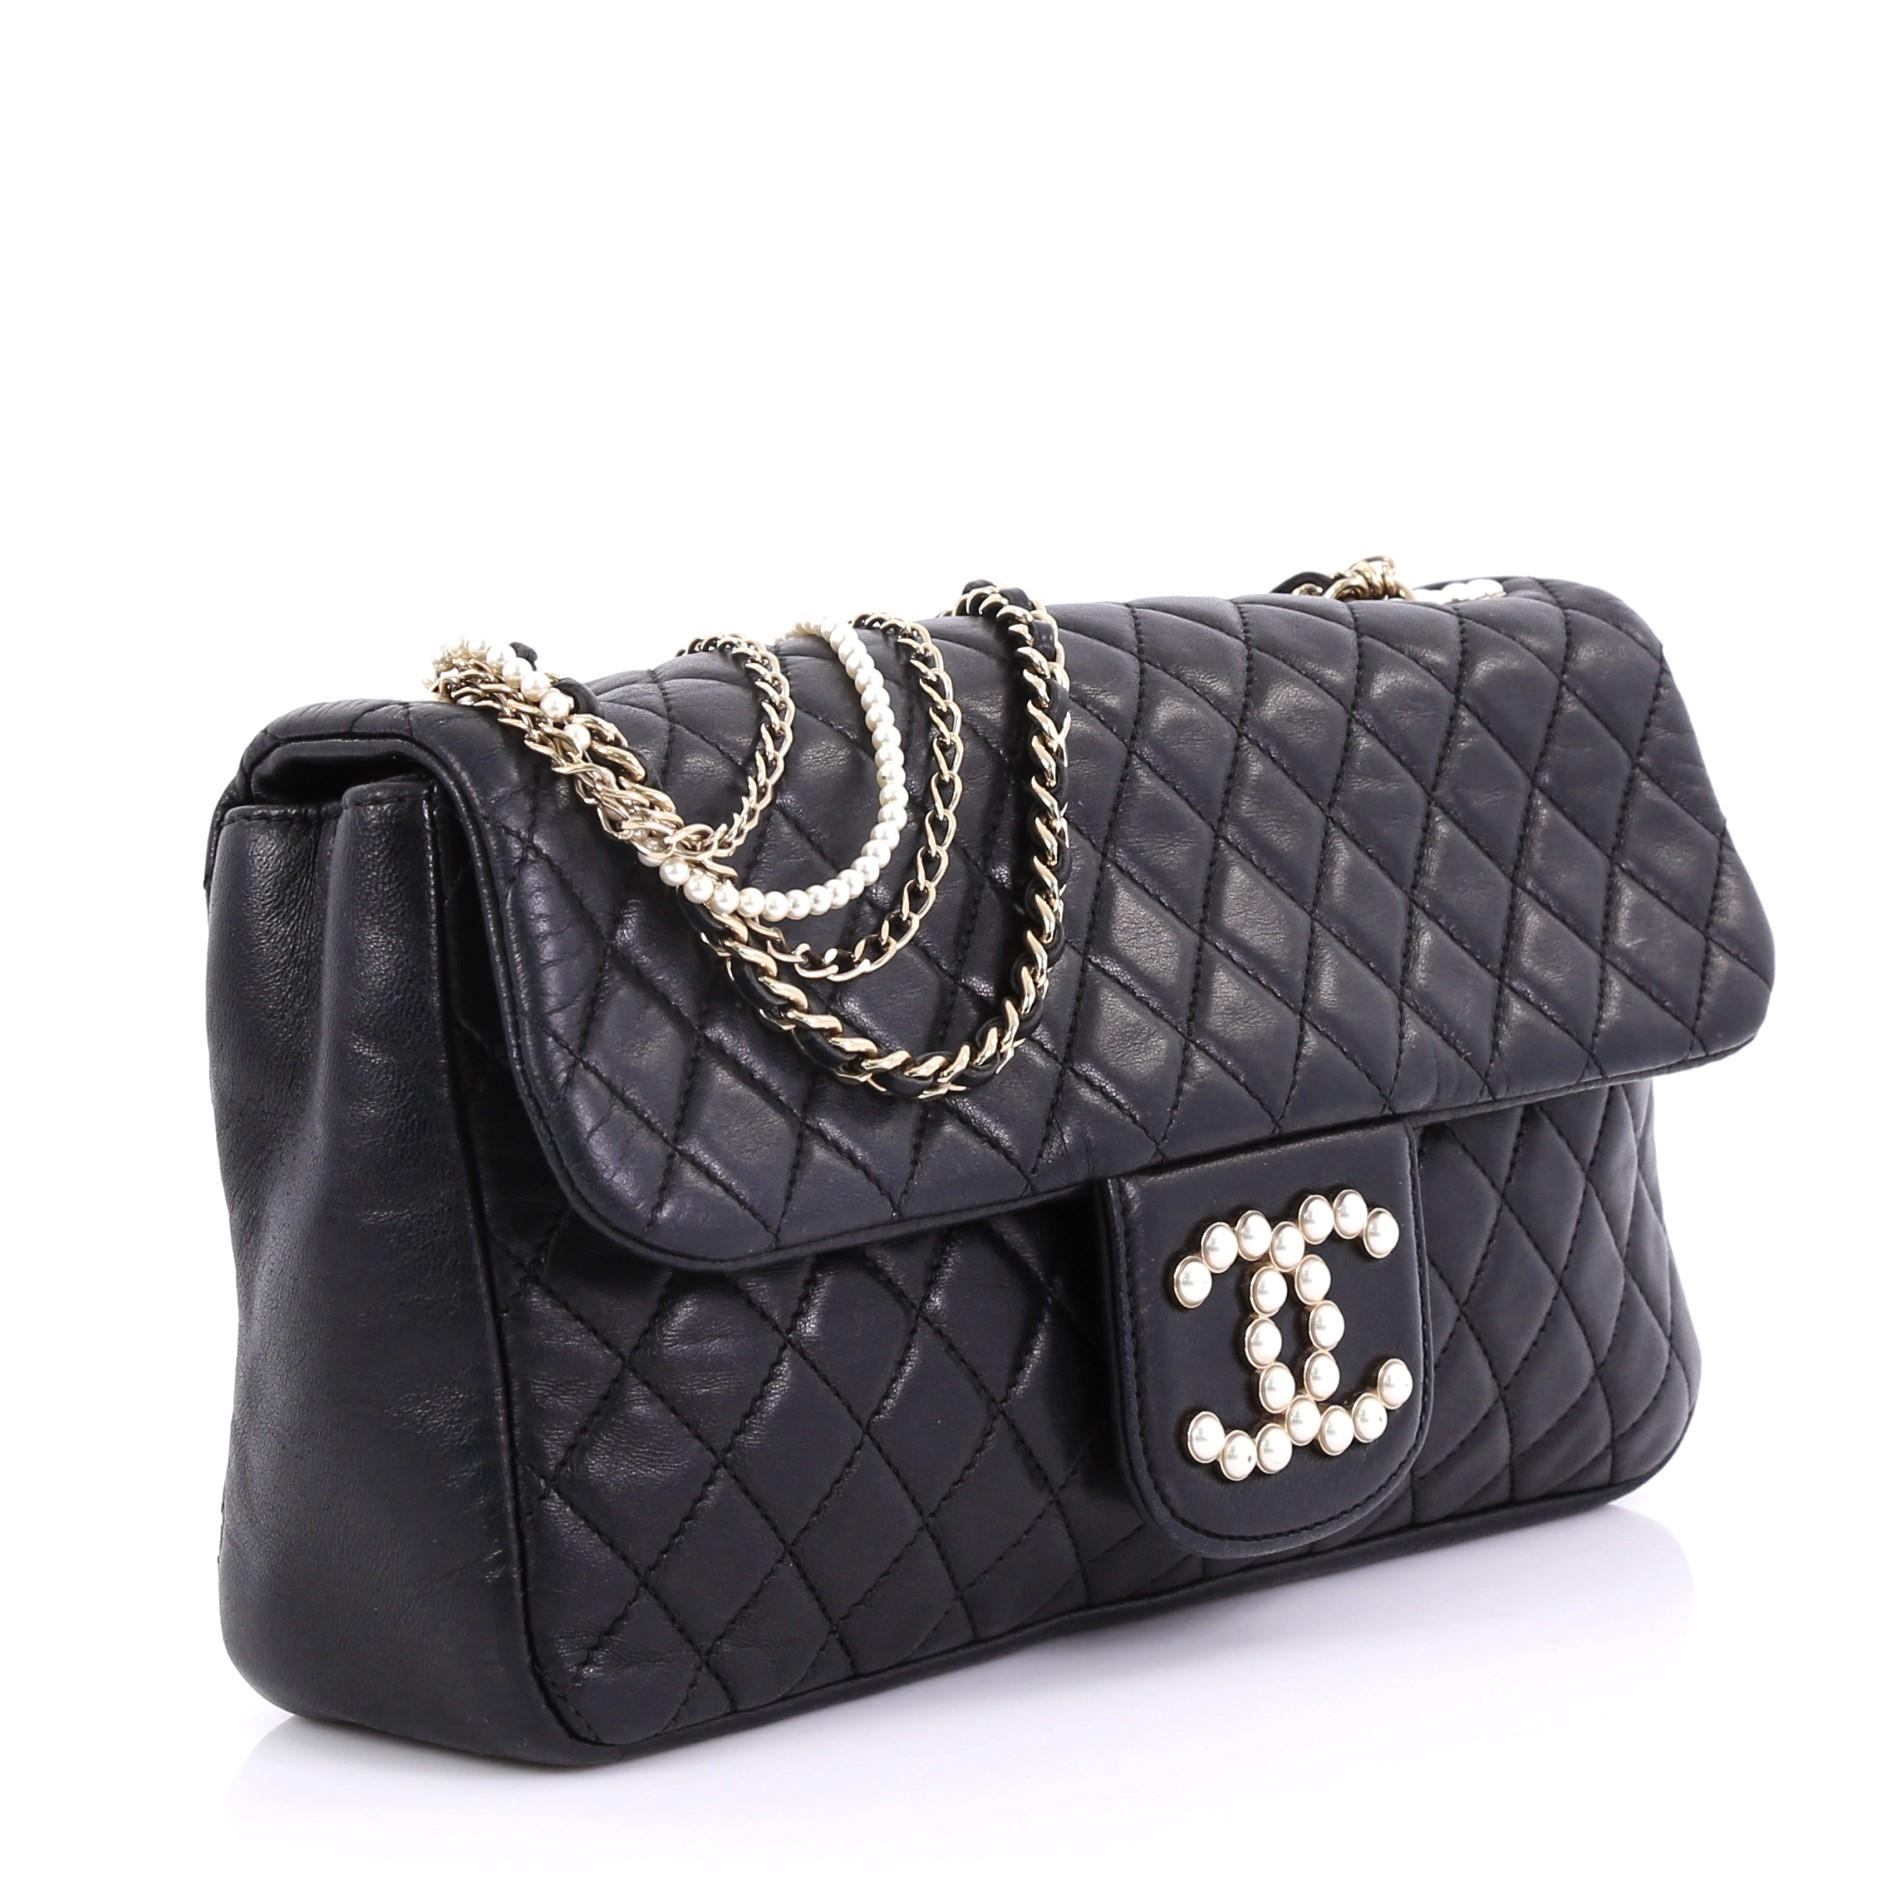 e8fe9adf2376 Chanel Westminster Pearl Chain Flap Bag Quilted Lambskin Medium at 1stdibs